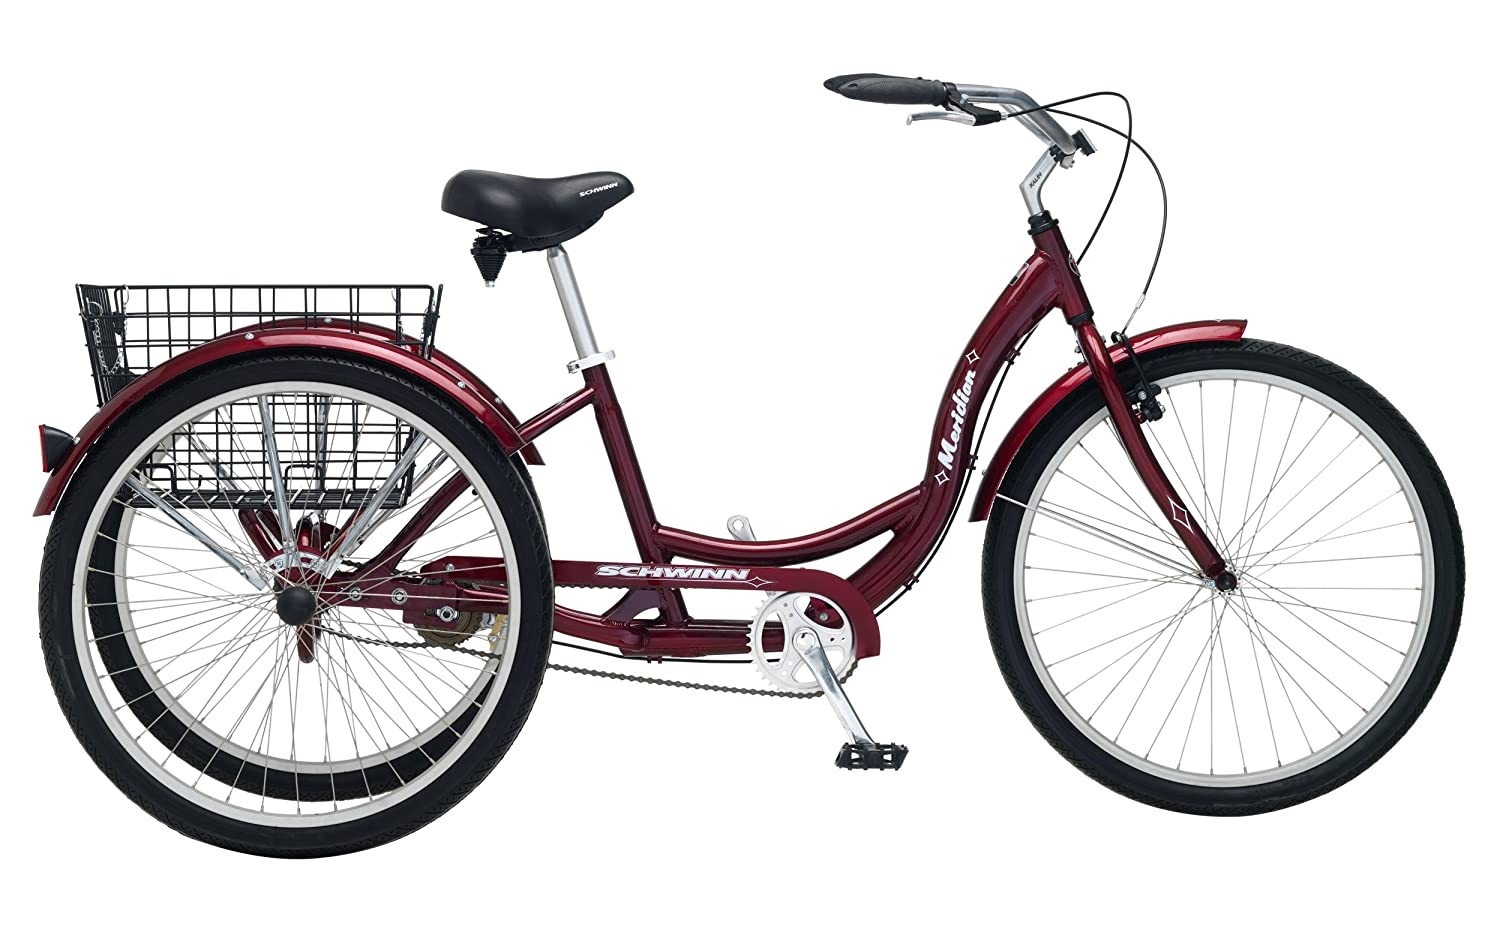 Bikes At Walmart For Adults Wheel Bikes For Adults At